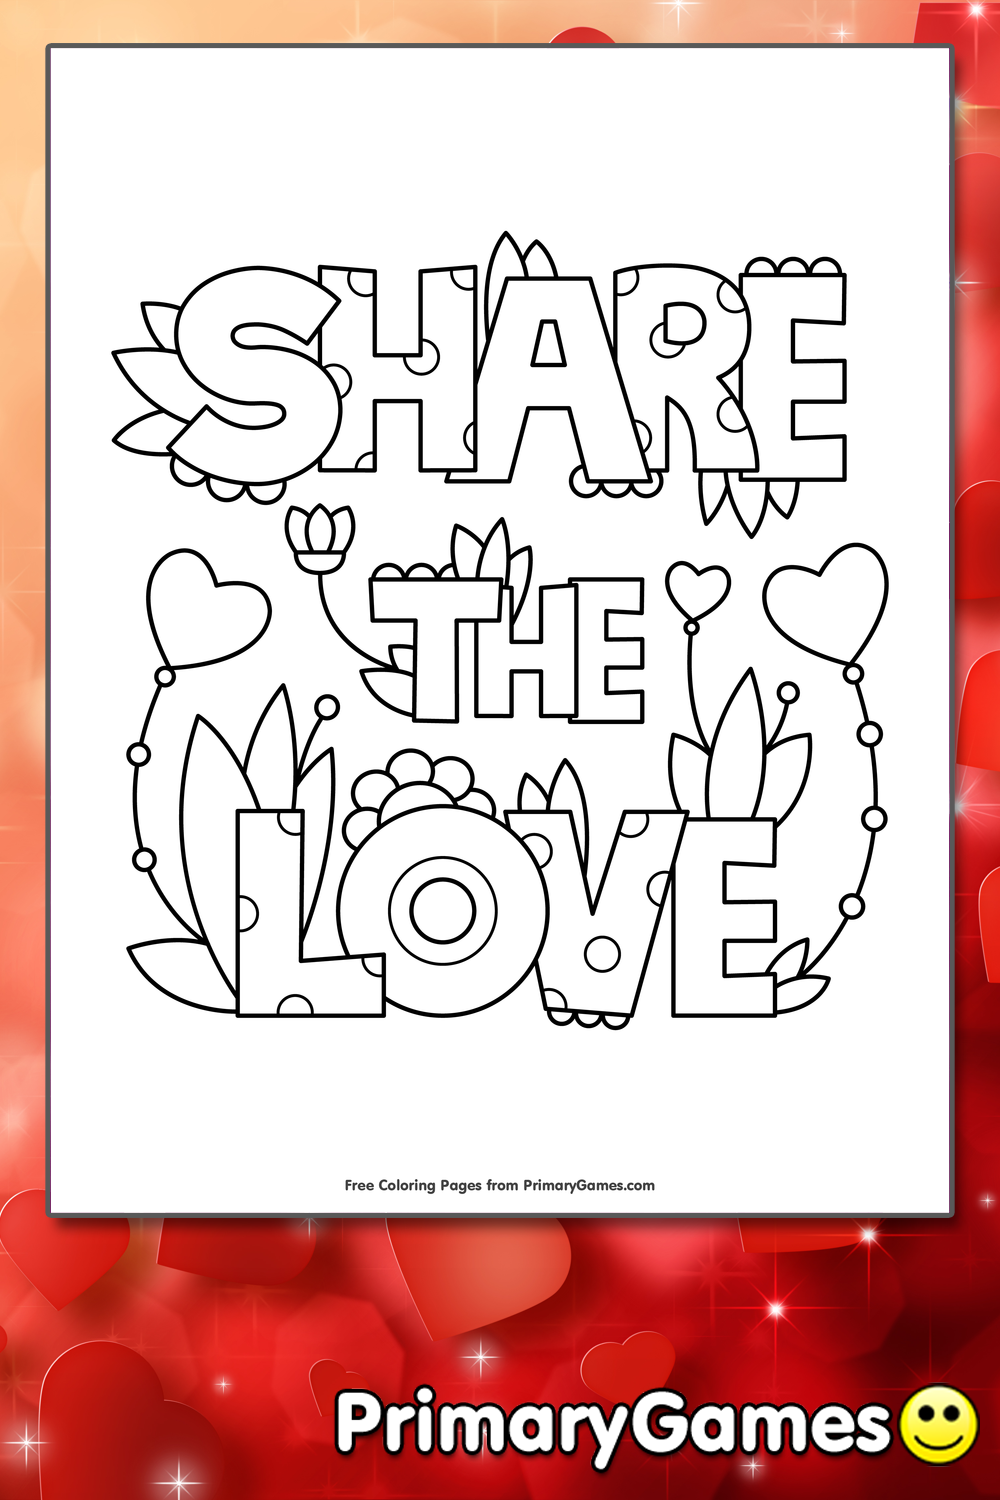 Share The Love Coloring Page Printable Valentine S Day Coloring